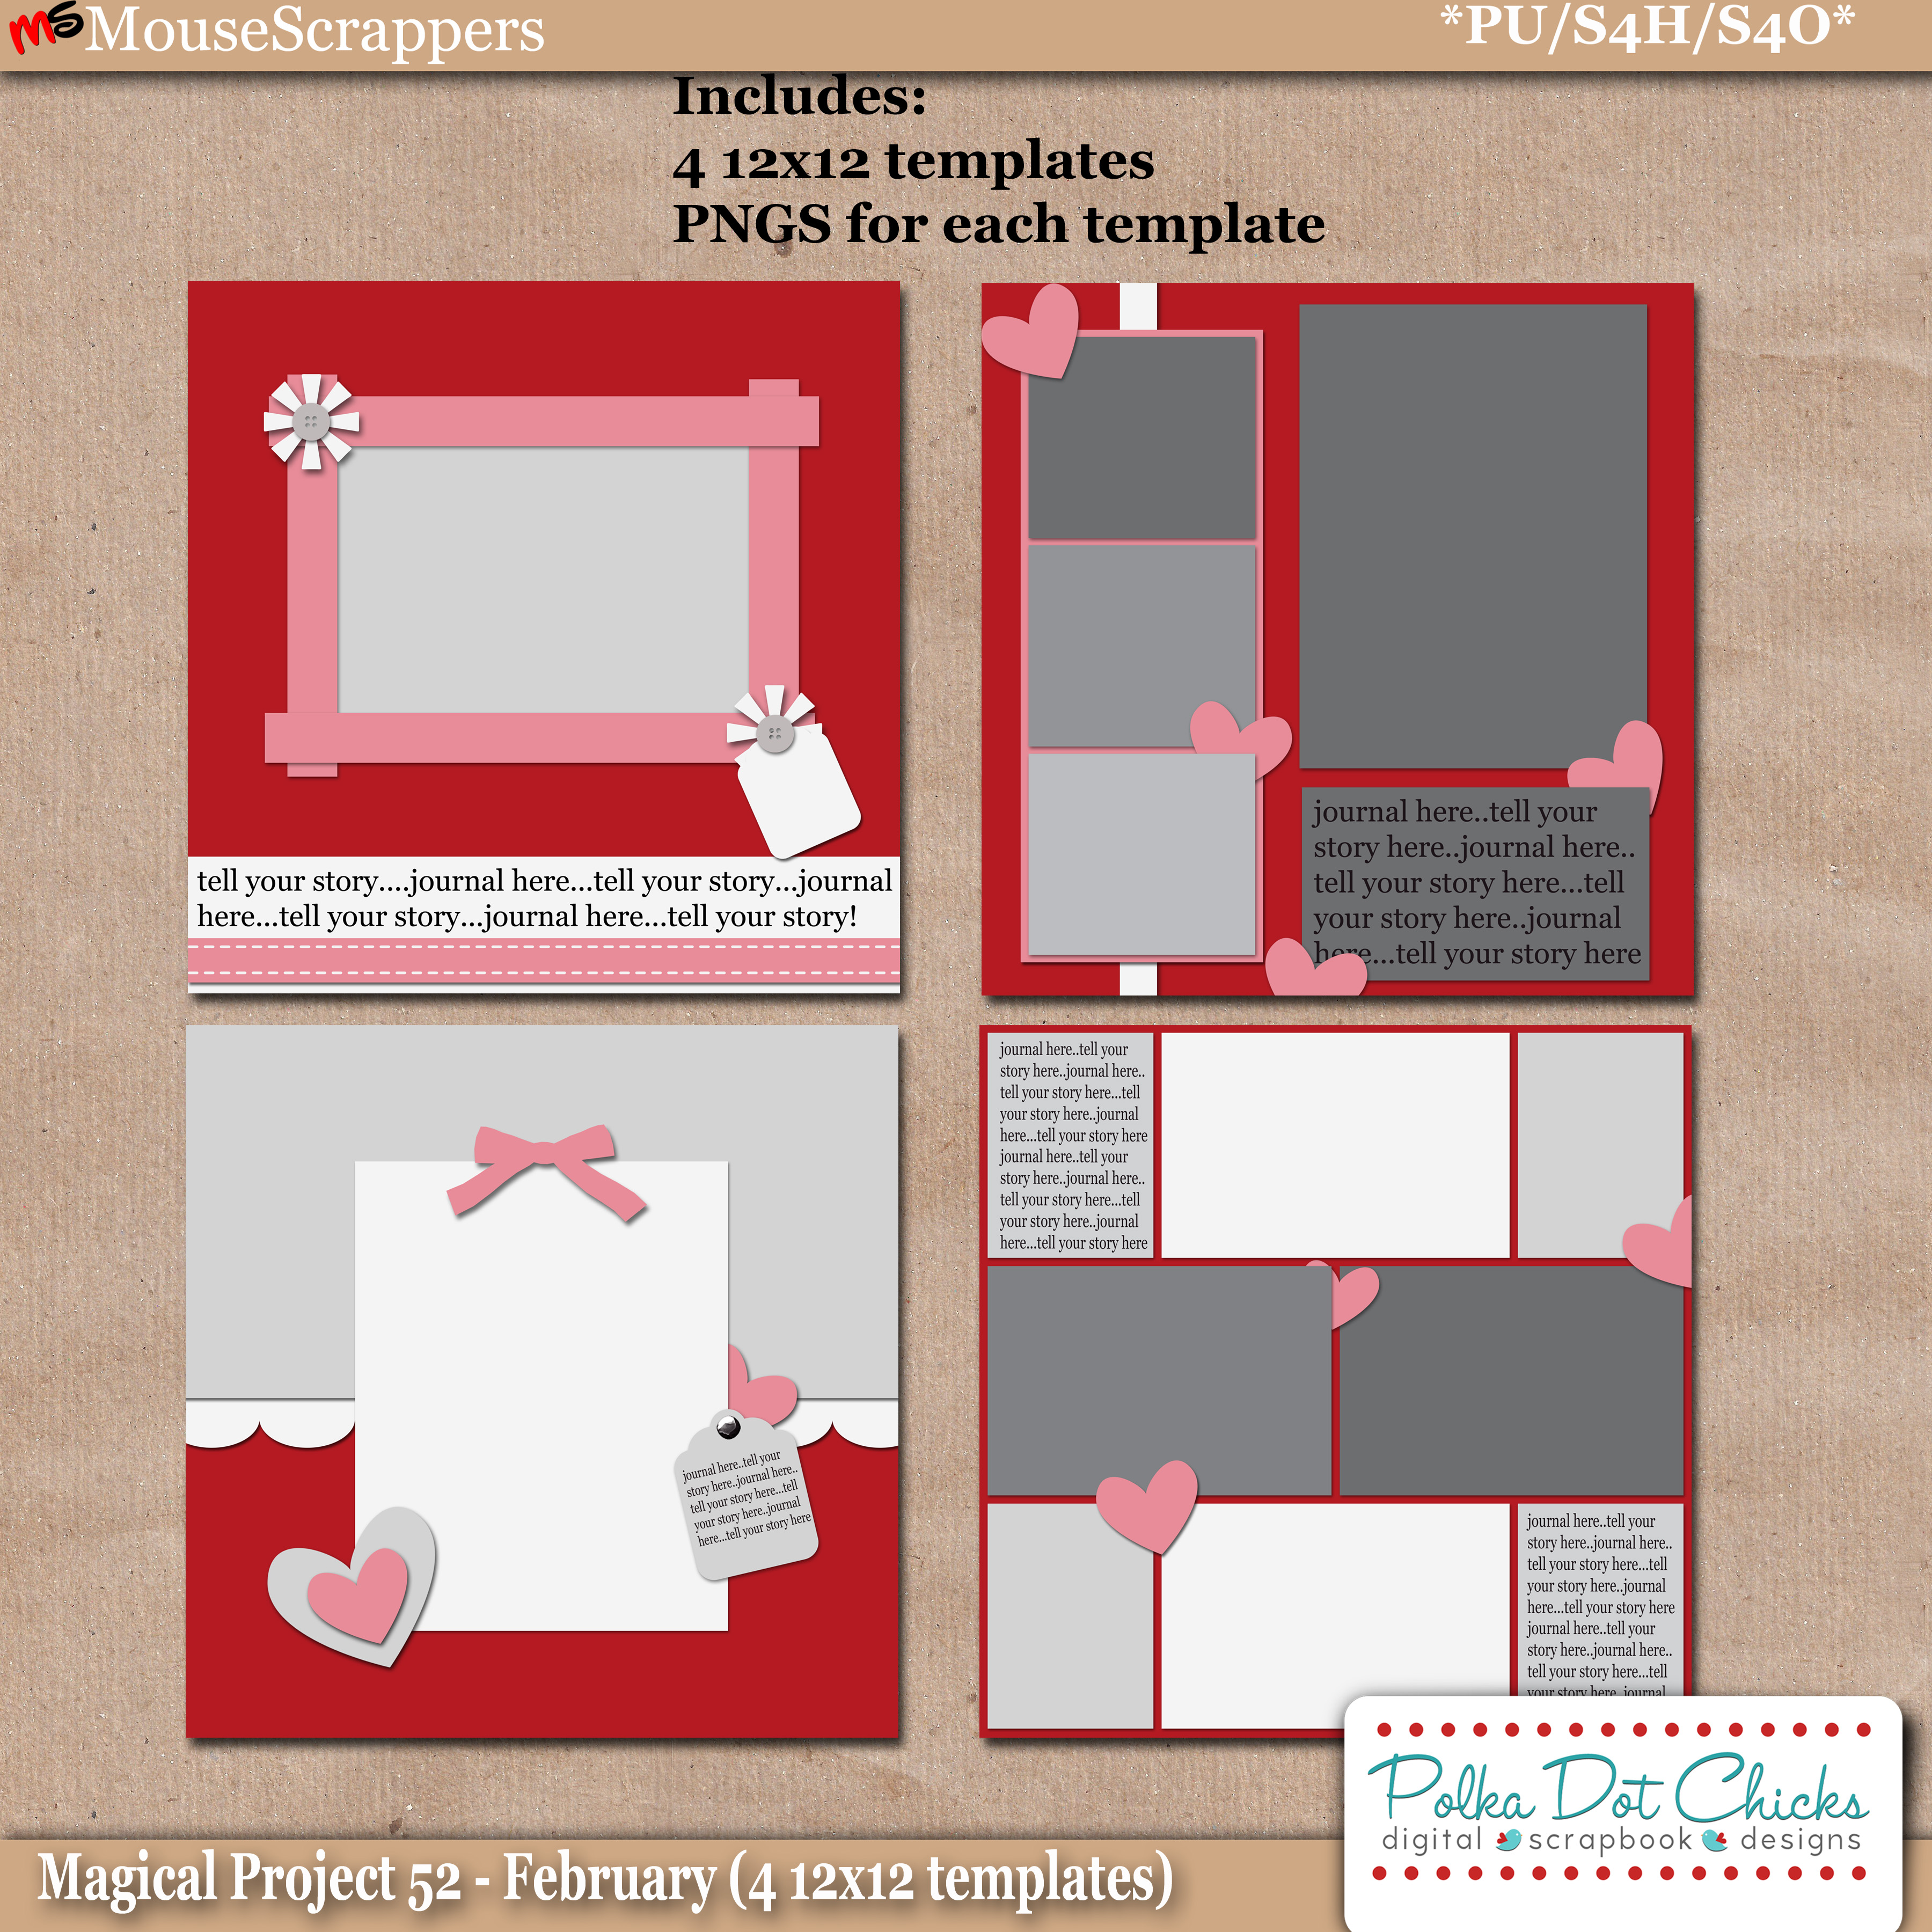 Magical Project 52 - February Templates